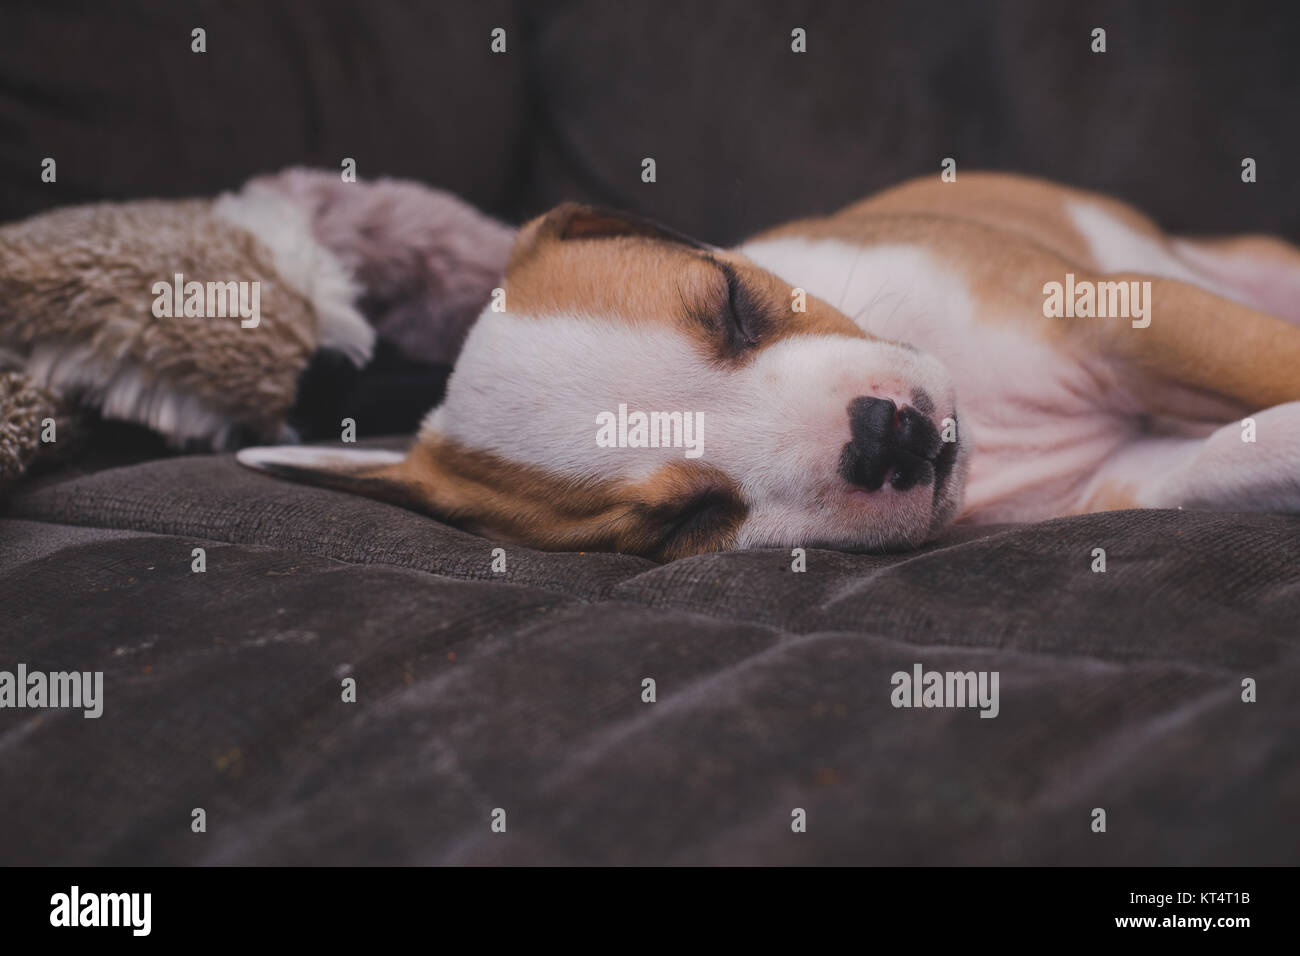 A pit bull mix 7 week old puppy sleeps on a gray couch. - Stock Image